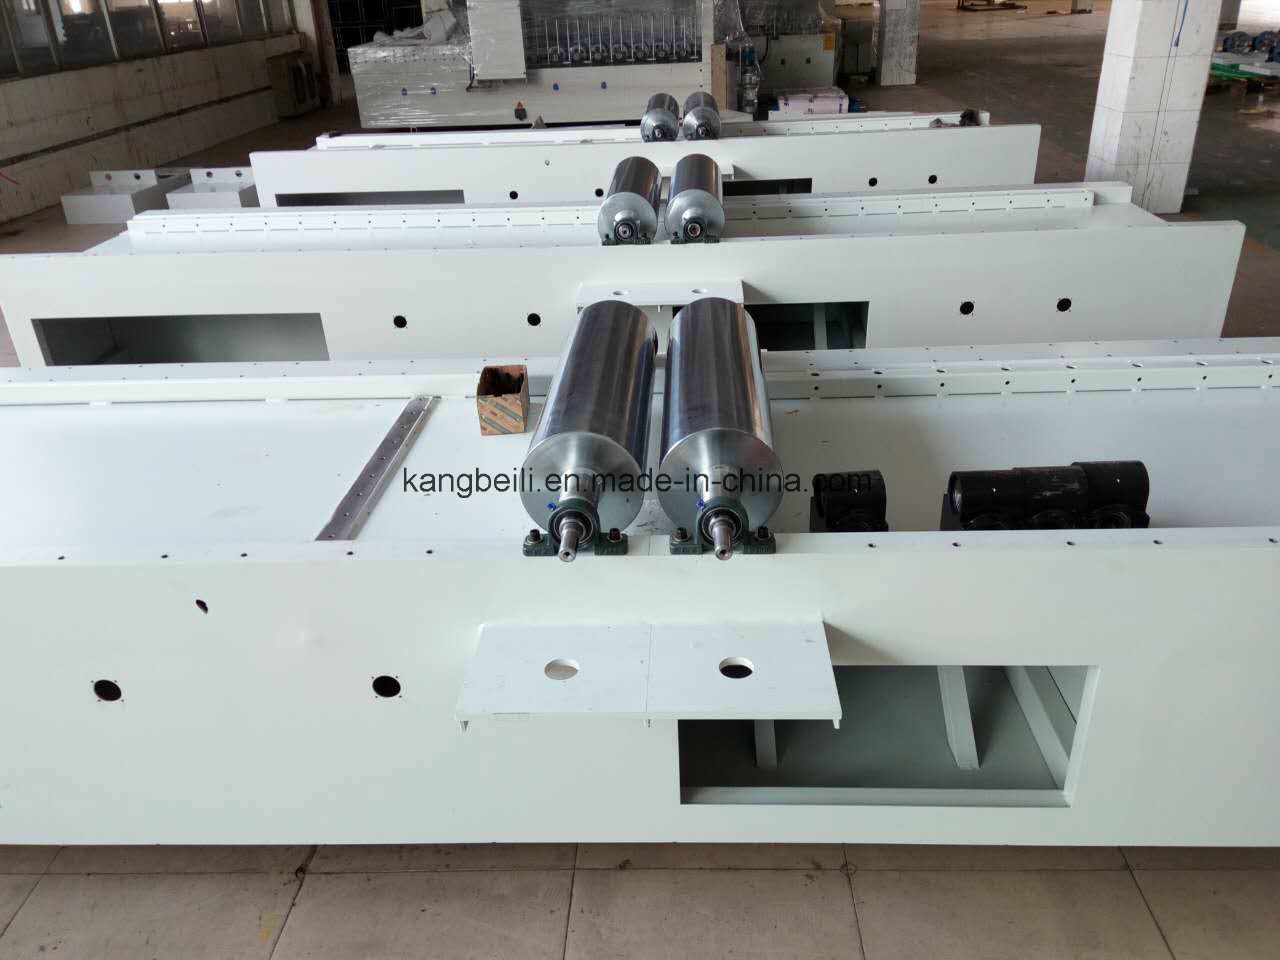 Pur Hot adhesive TUV Certificated Woodworking Wrapping Machines